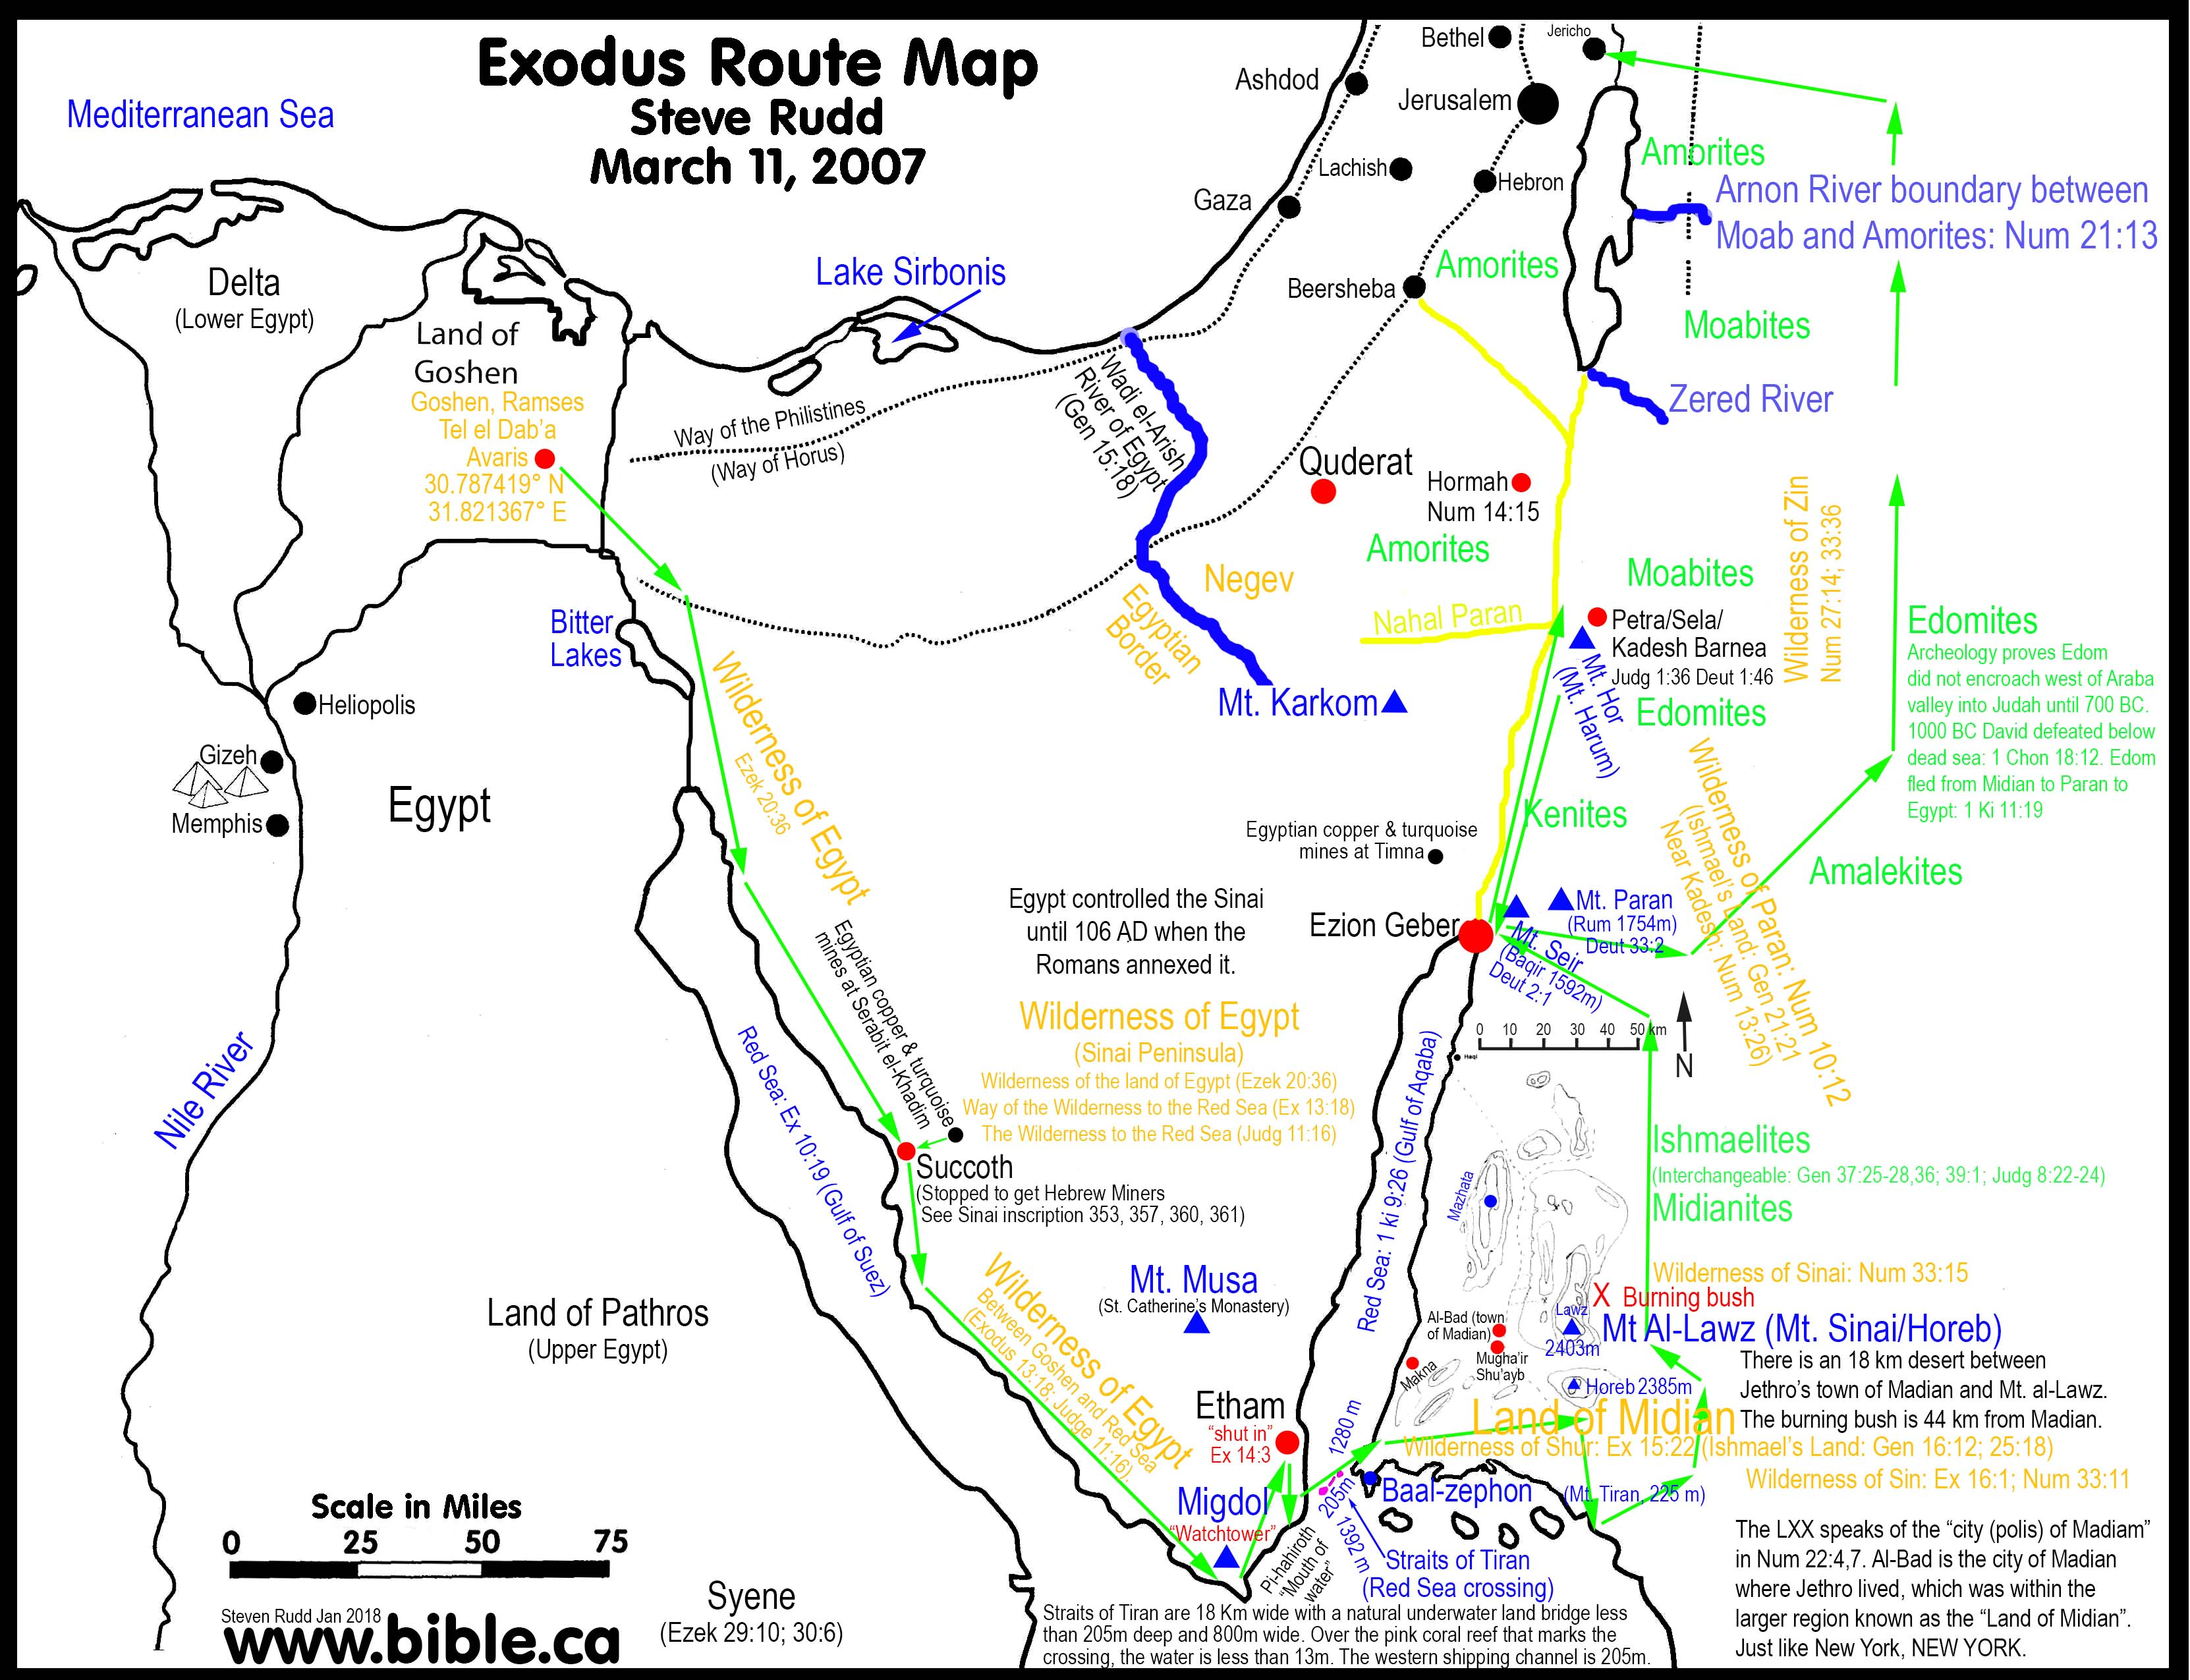 3324x2550 Bible Maps The Exodus From Egypt 1440 Bc